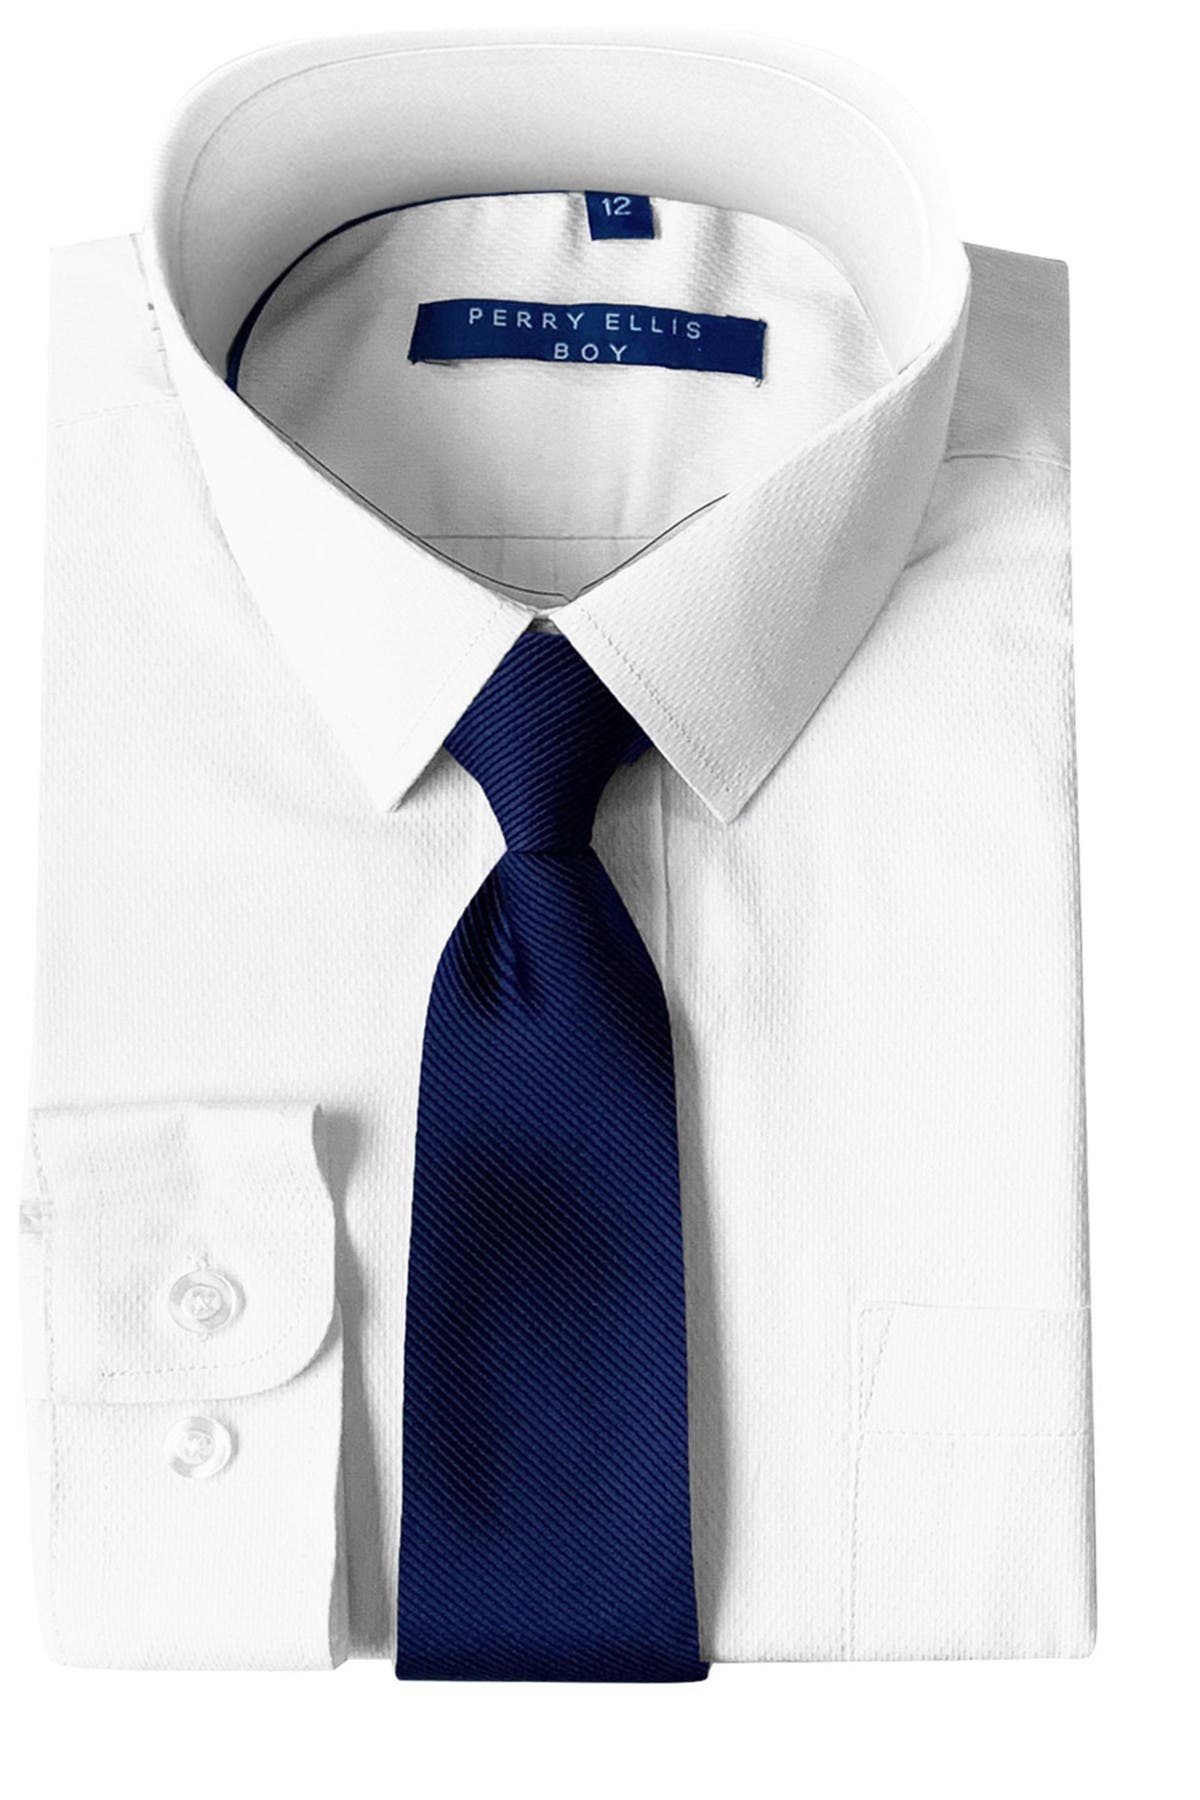 Image of Perry Ellis Solid Dress Shirt & Diagonal Tie Set